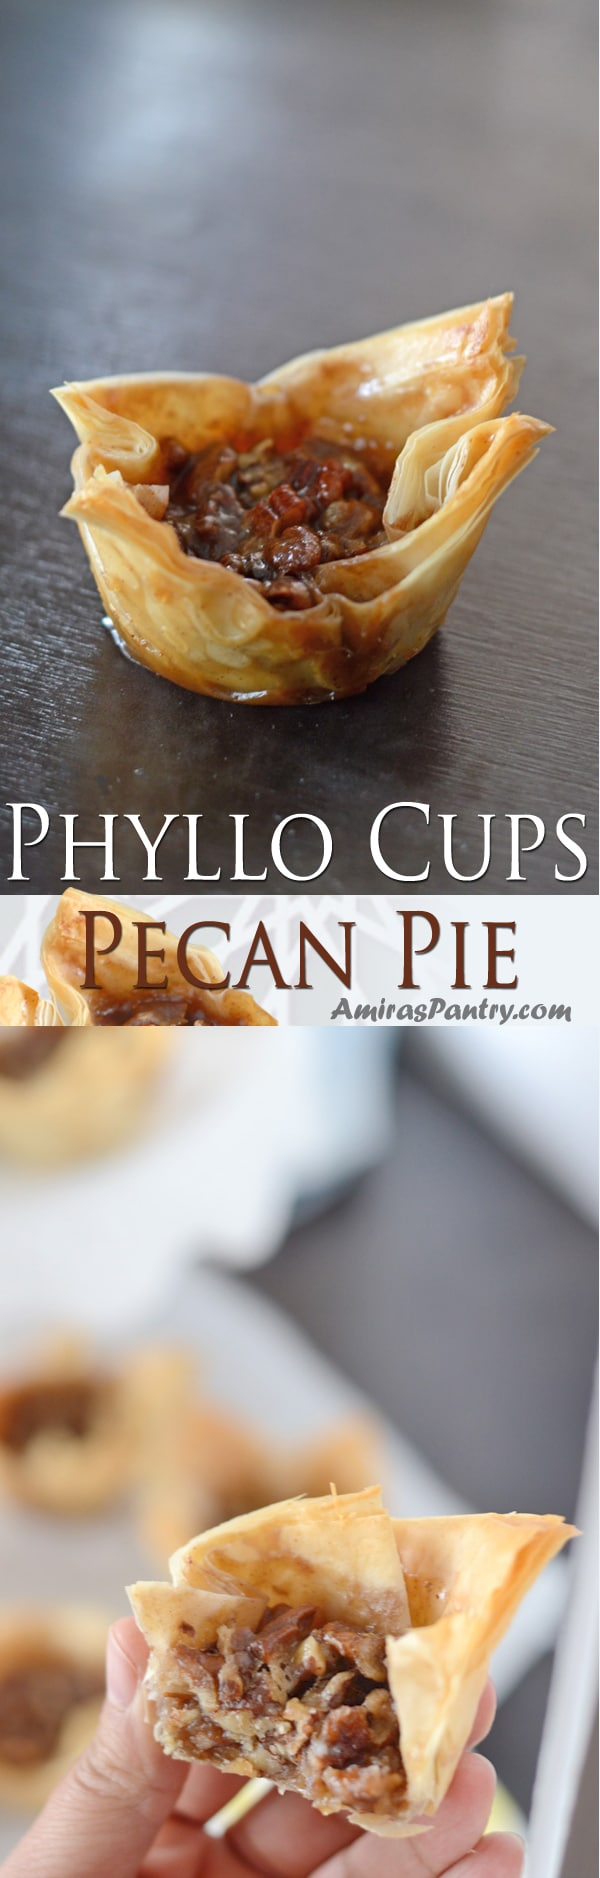 Check out this take on the traditional pecan pie. Go crazy with the crust with these pecan pie phyllo crust and learn how to make phyllo cups. I just have to warn you these are highly addicting pecan pie baklava cups.